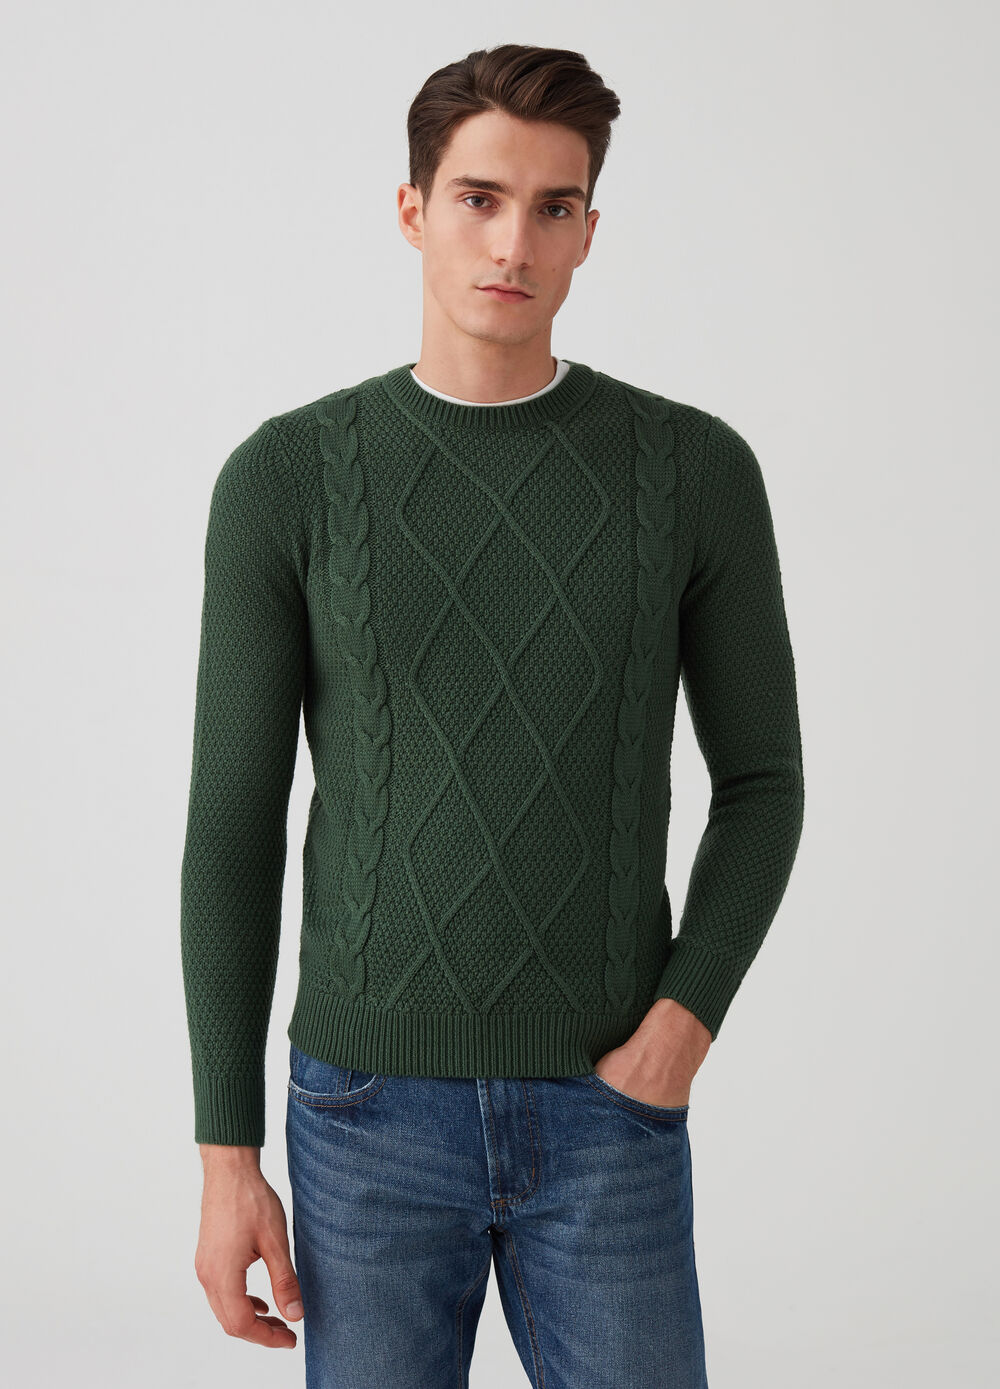 Knitted pullover with braided weave